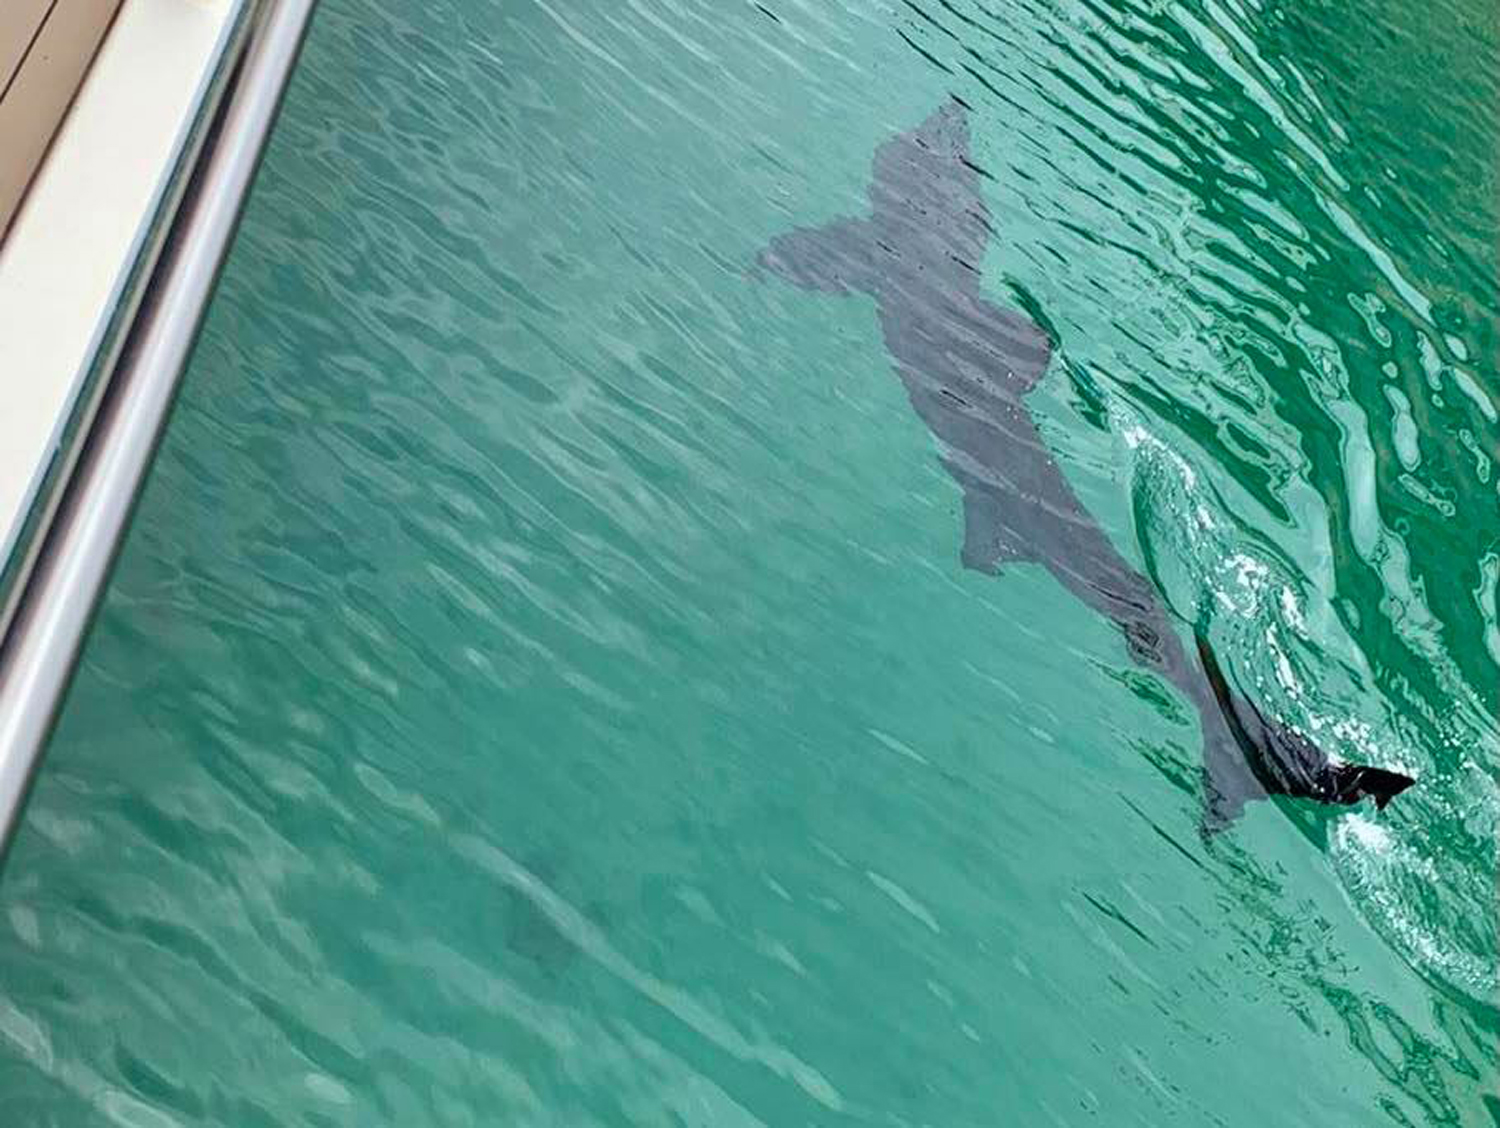 The basking shark was spotted in Torquay marina (Torquay Water Sports/PA)